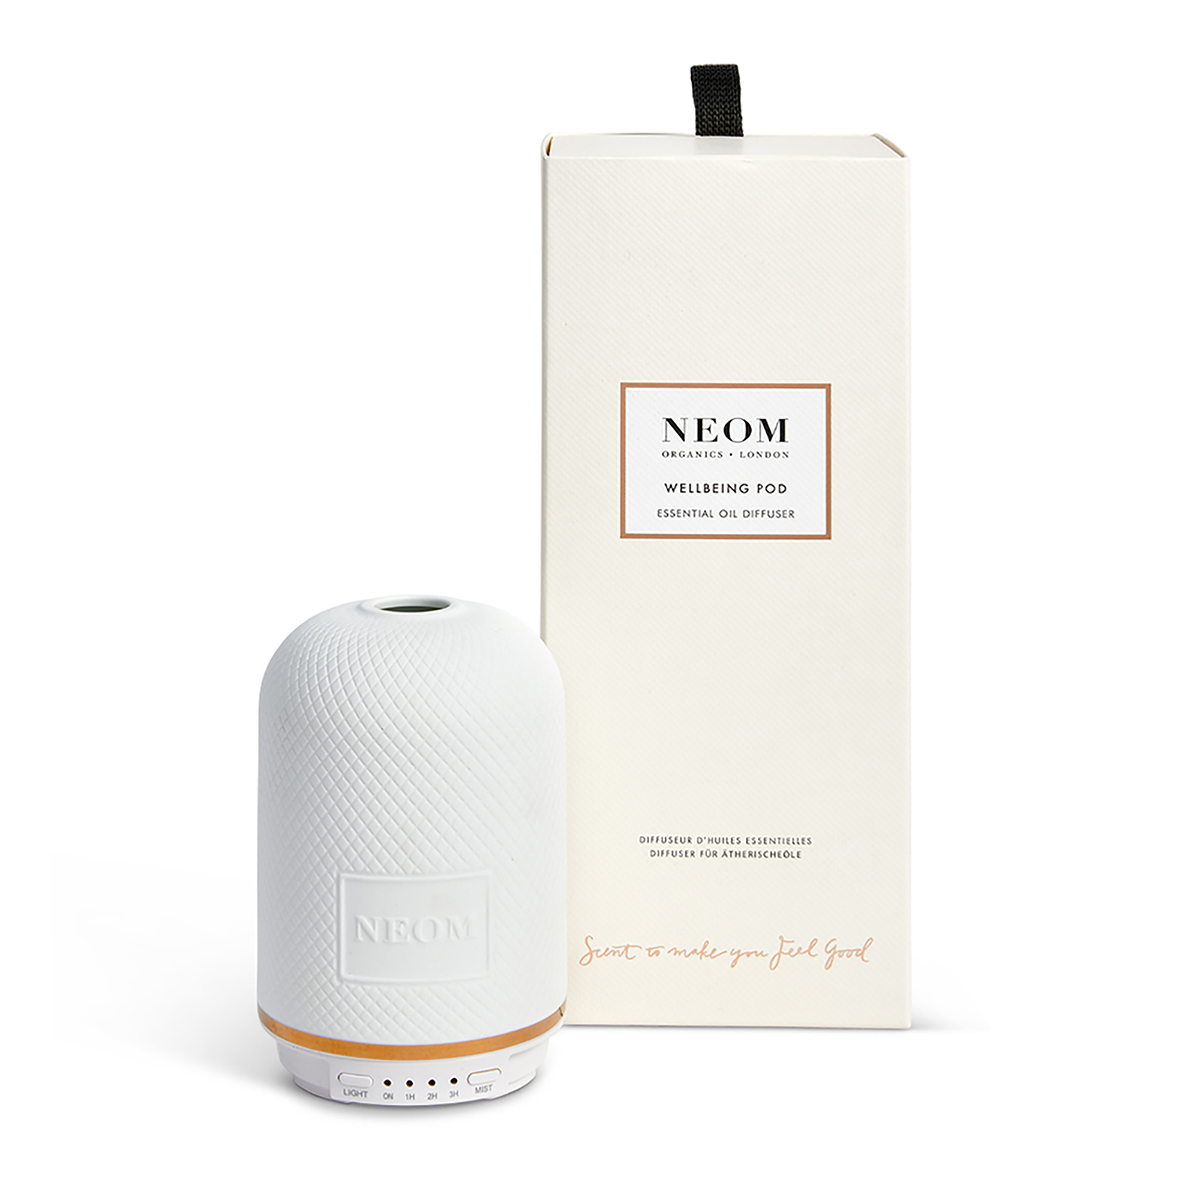 Wellbeing Essential Oil Diffuser Neom Organics, home fragrance from Beautiful Brands